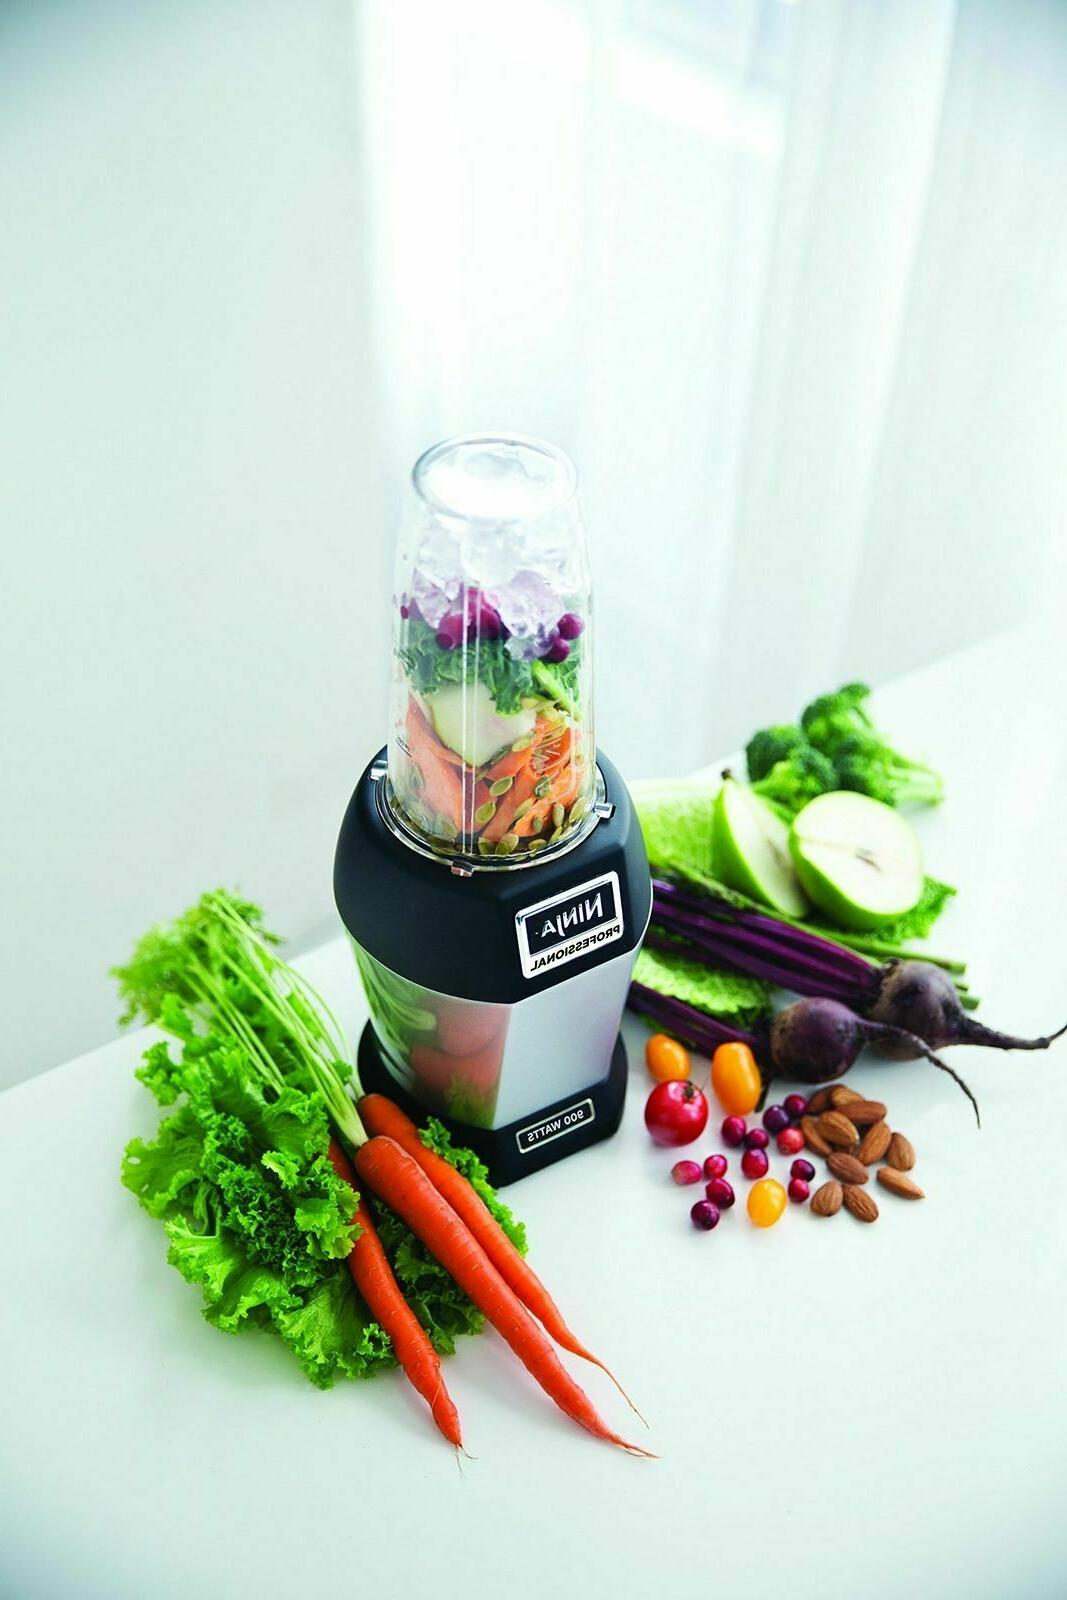 Nutri BL456 900W Professional Cups & Shakes Smoothies